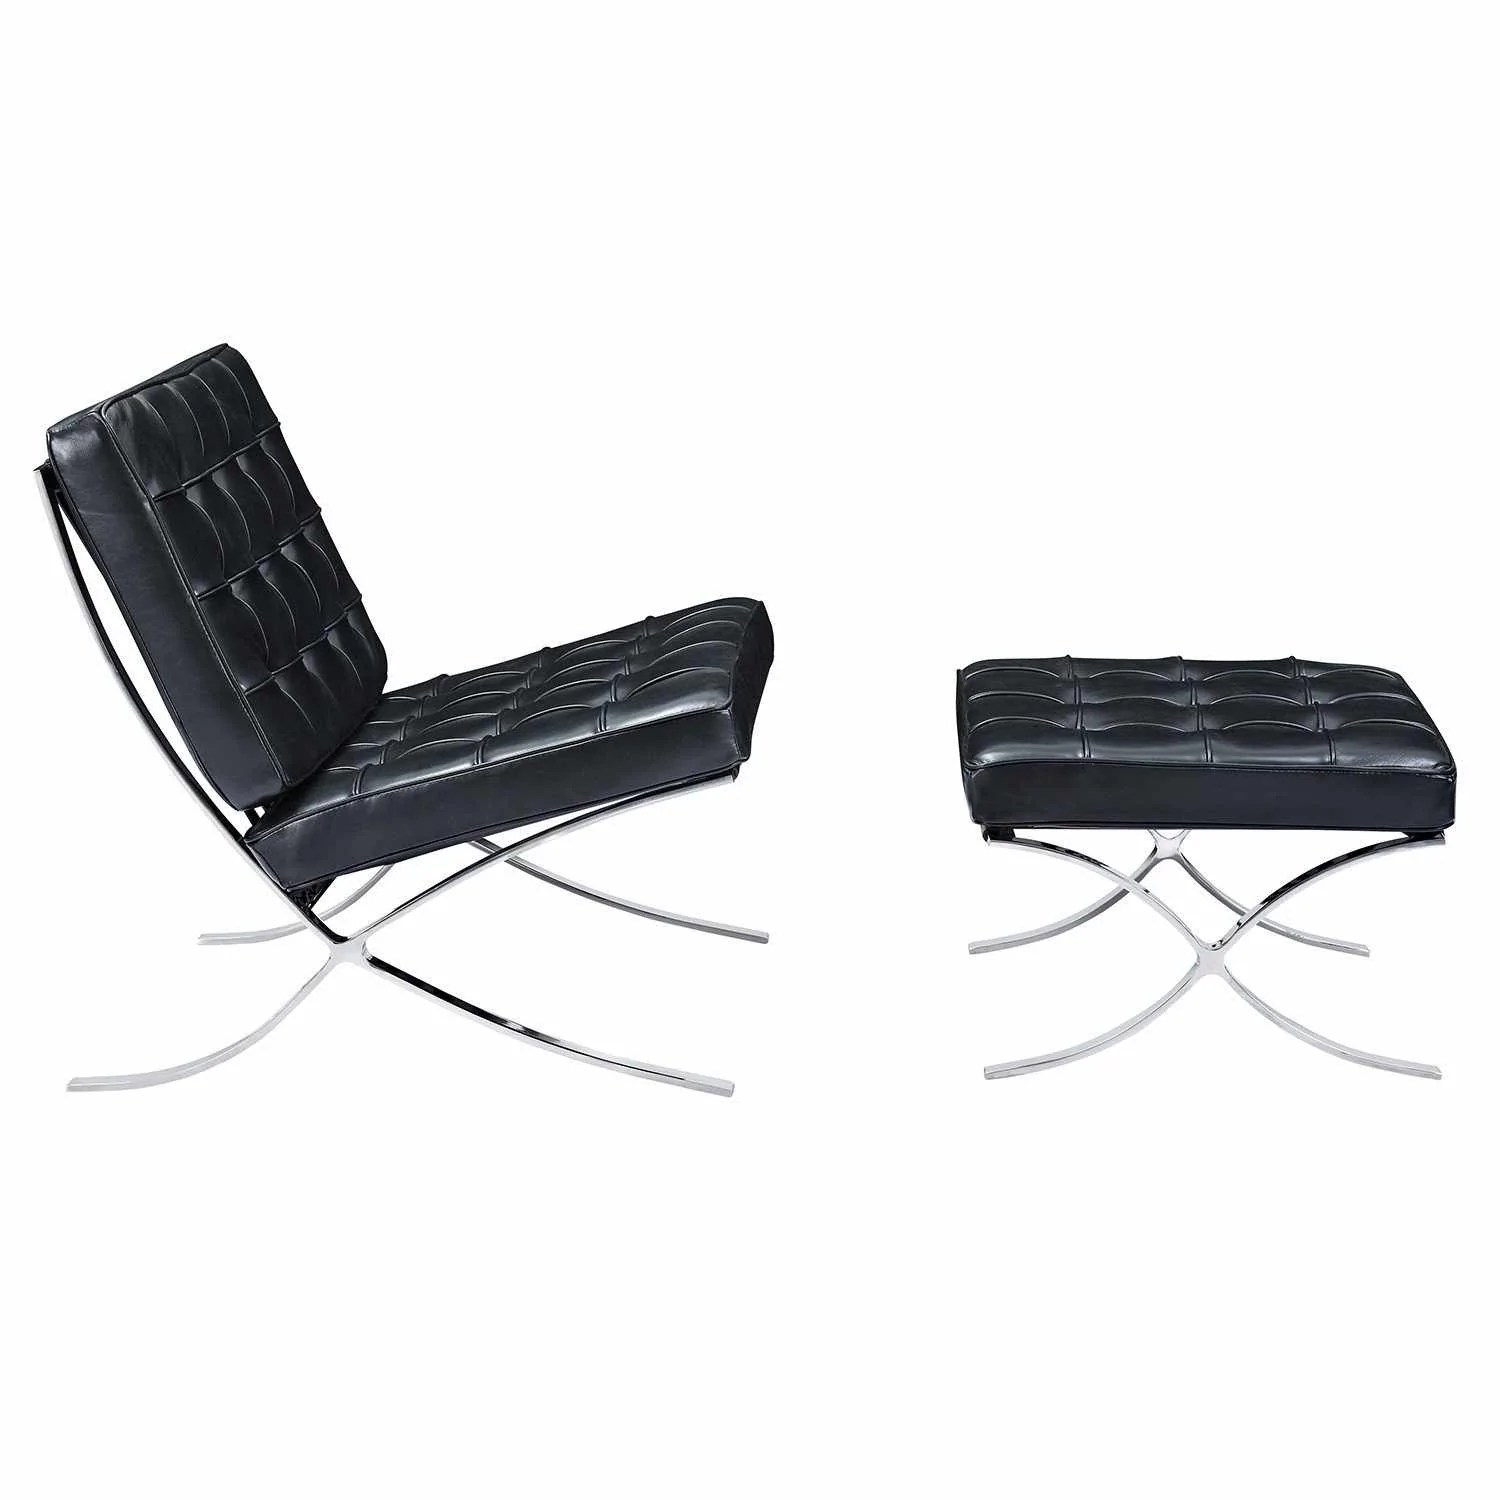 black chair and ottoman graco baby swing barcelona style reproduction emfurn